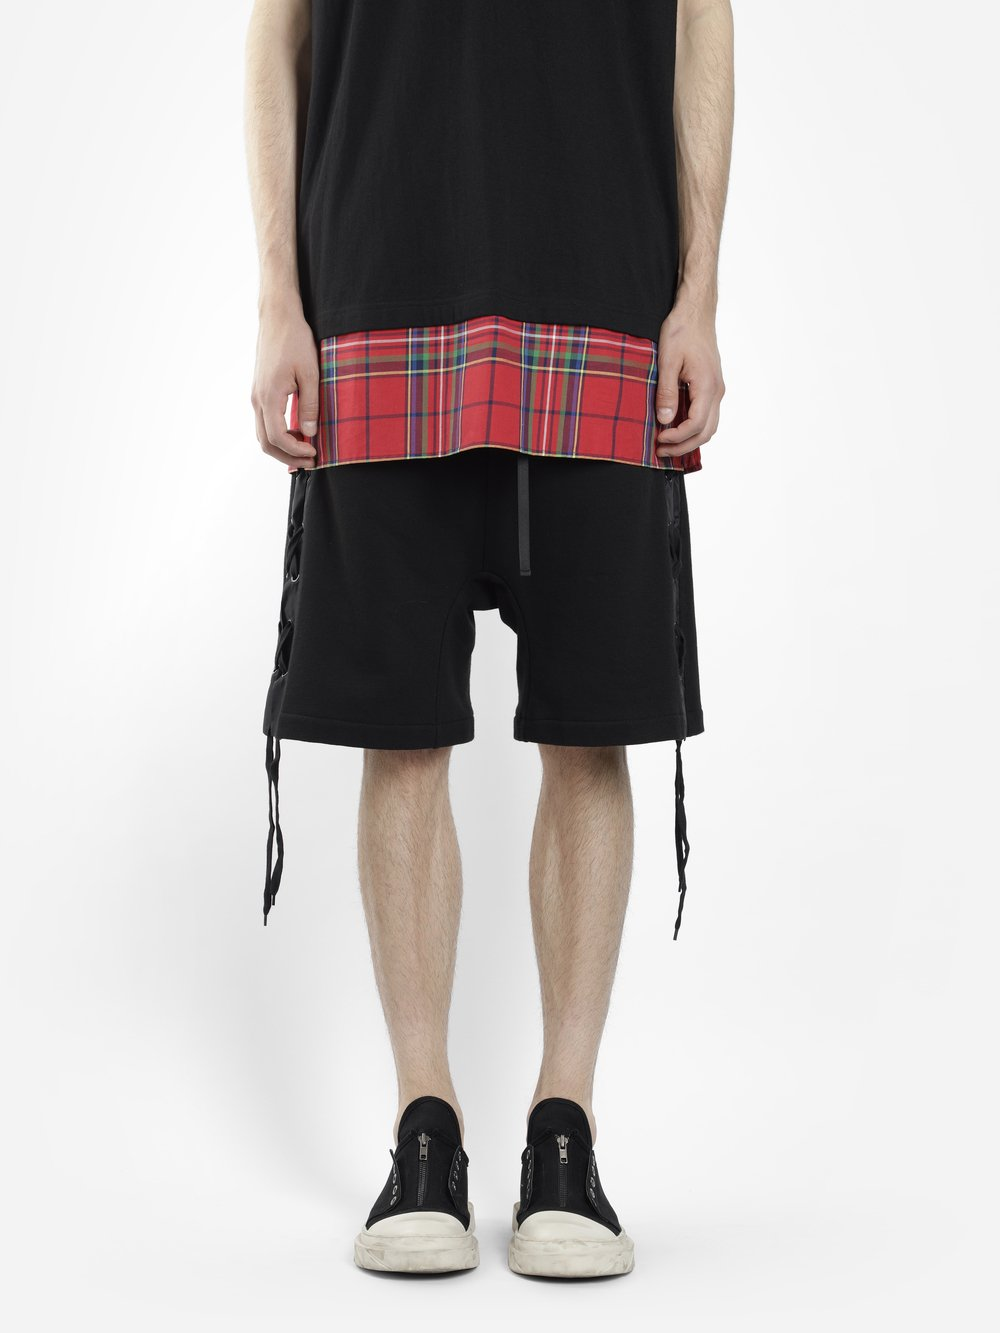 D BY D MEN'S BLACK SHORTS WITH LACING